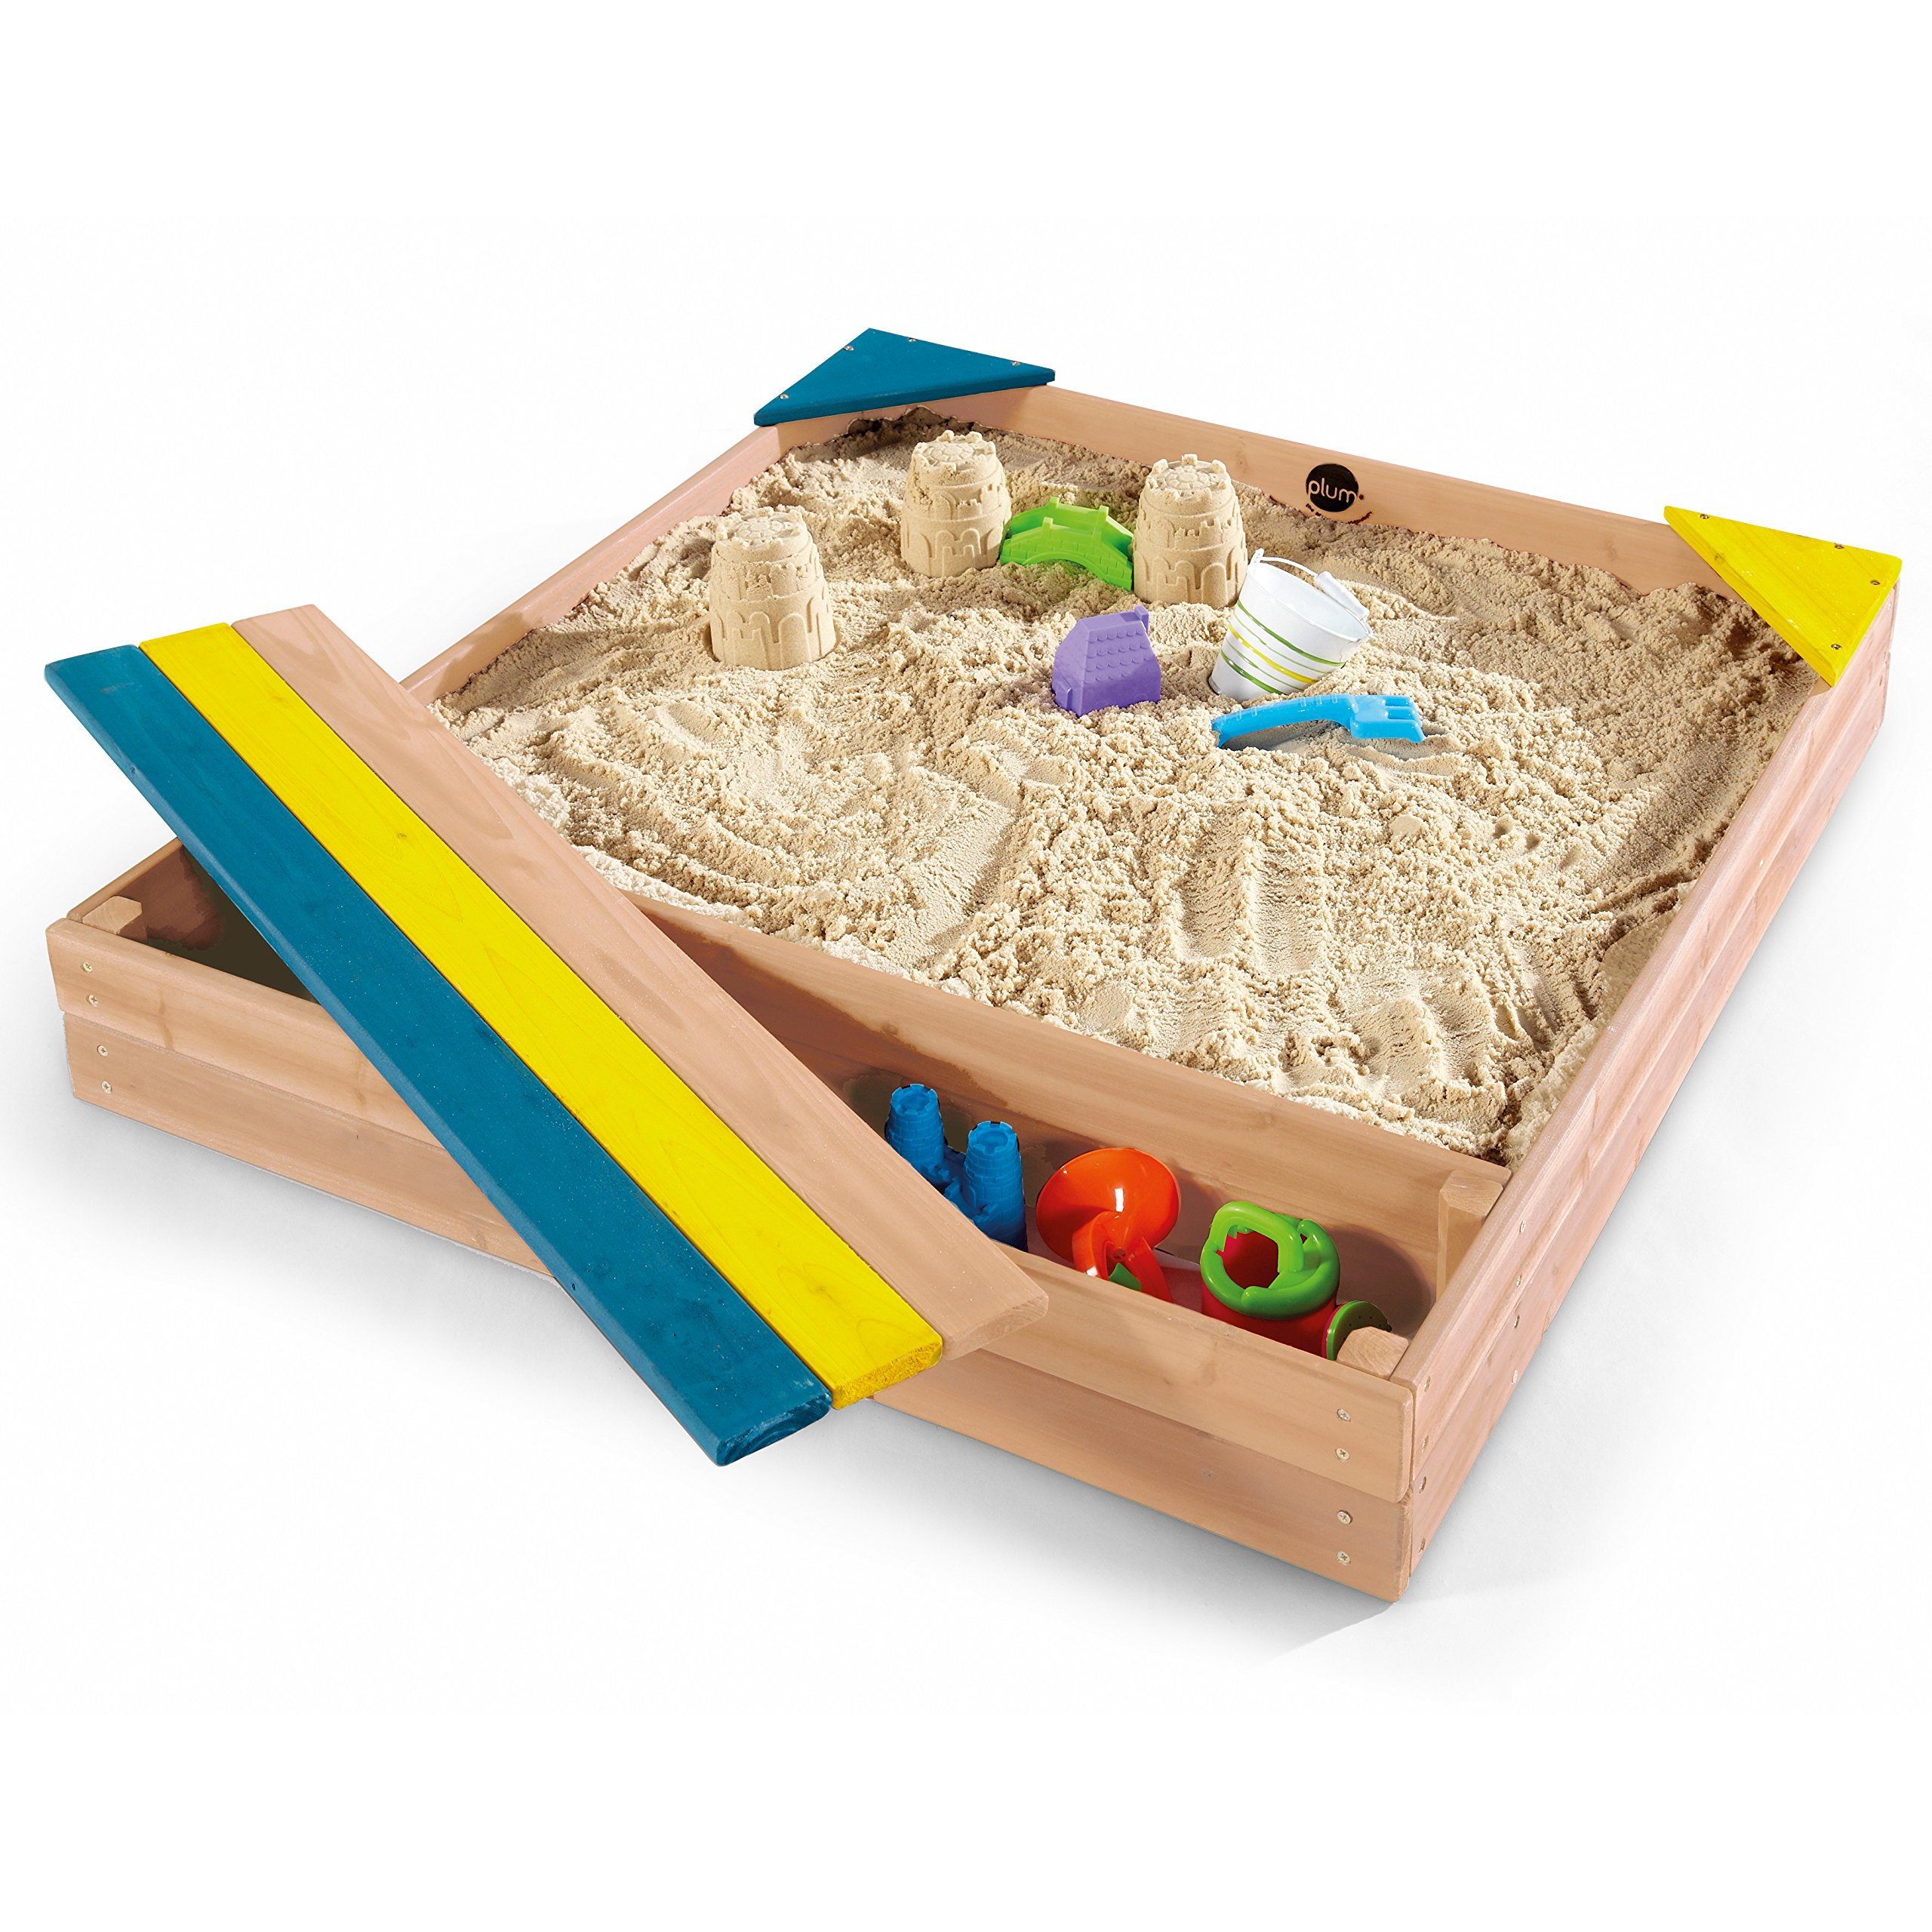 Plum Store-it Wooden Sand Box with Storage Bench and Seating